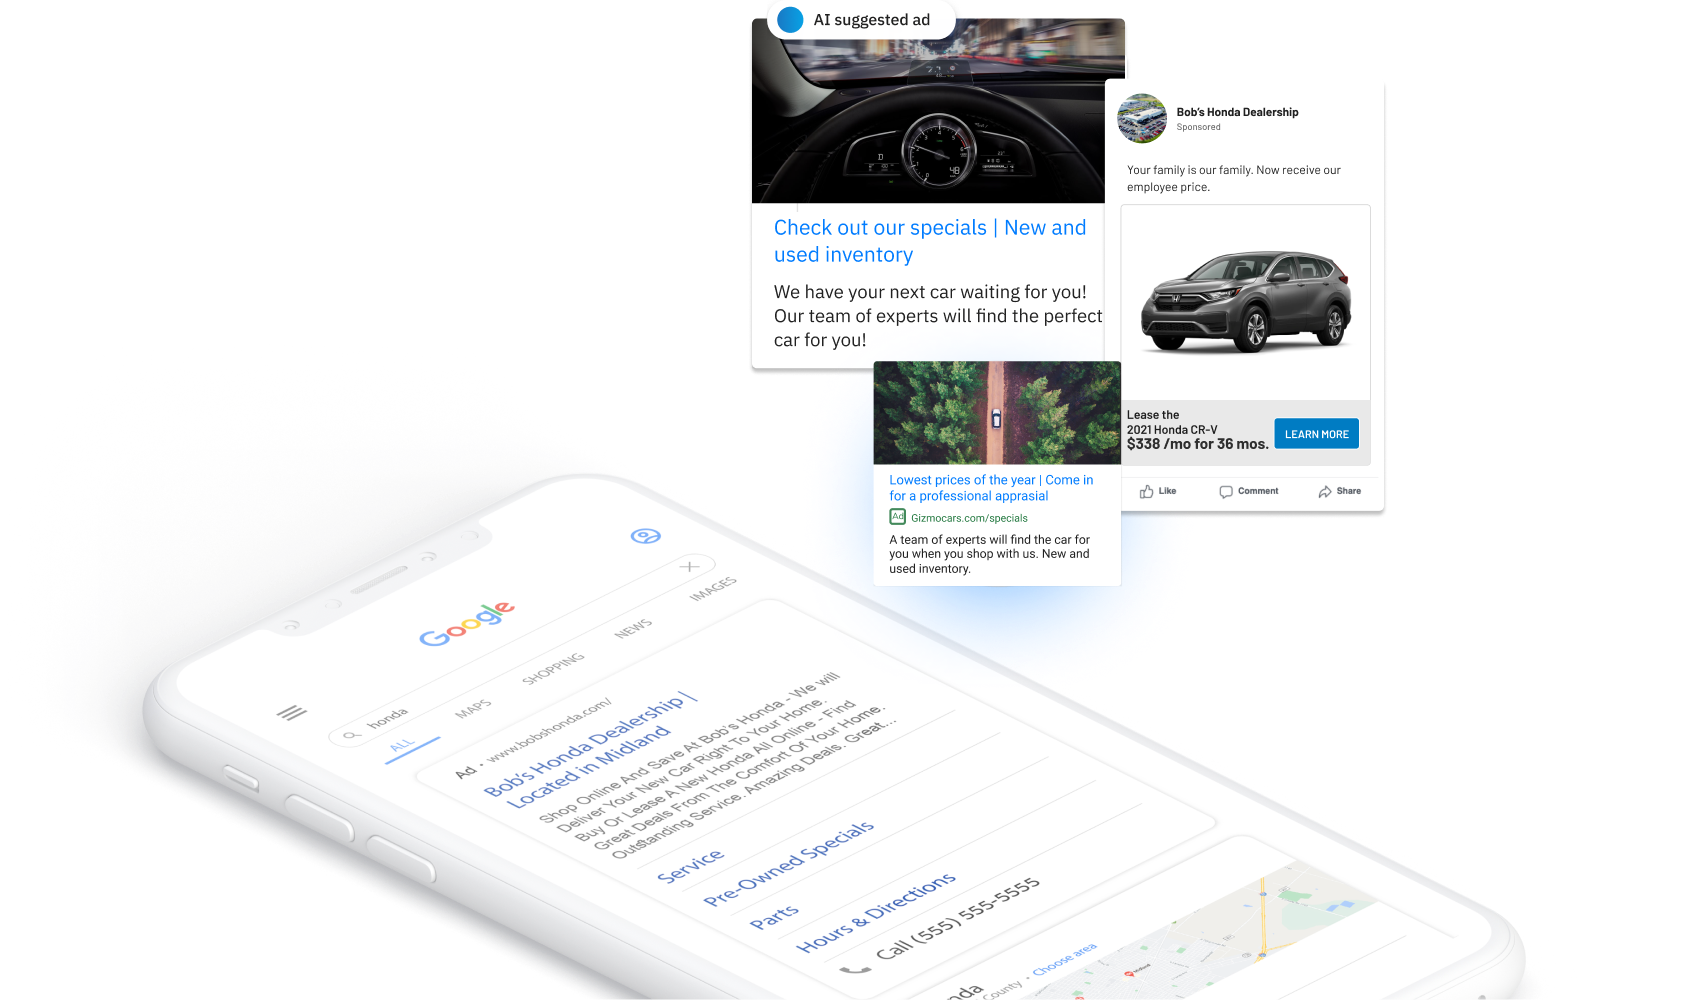 Reach new levels of paid search with fast, easy, competitive ads